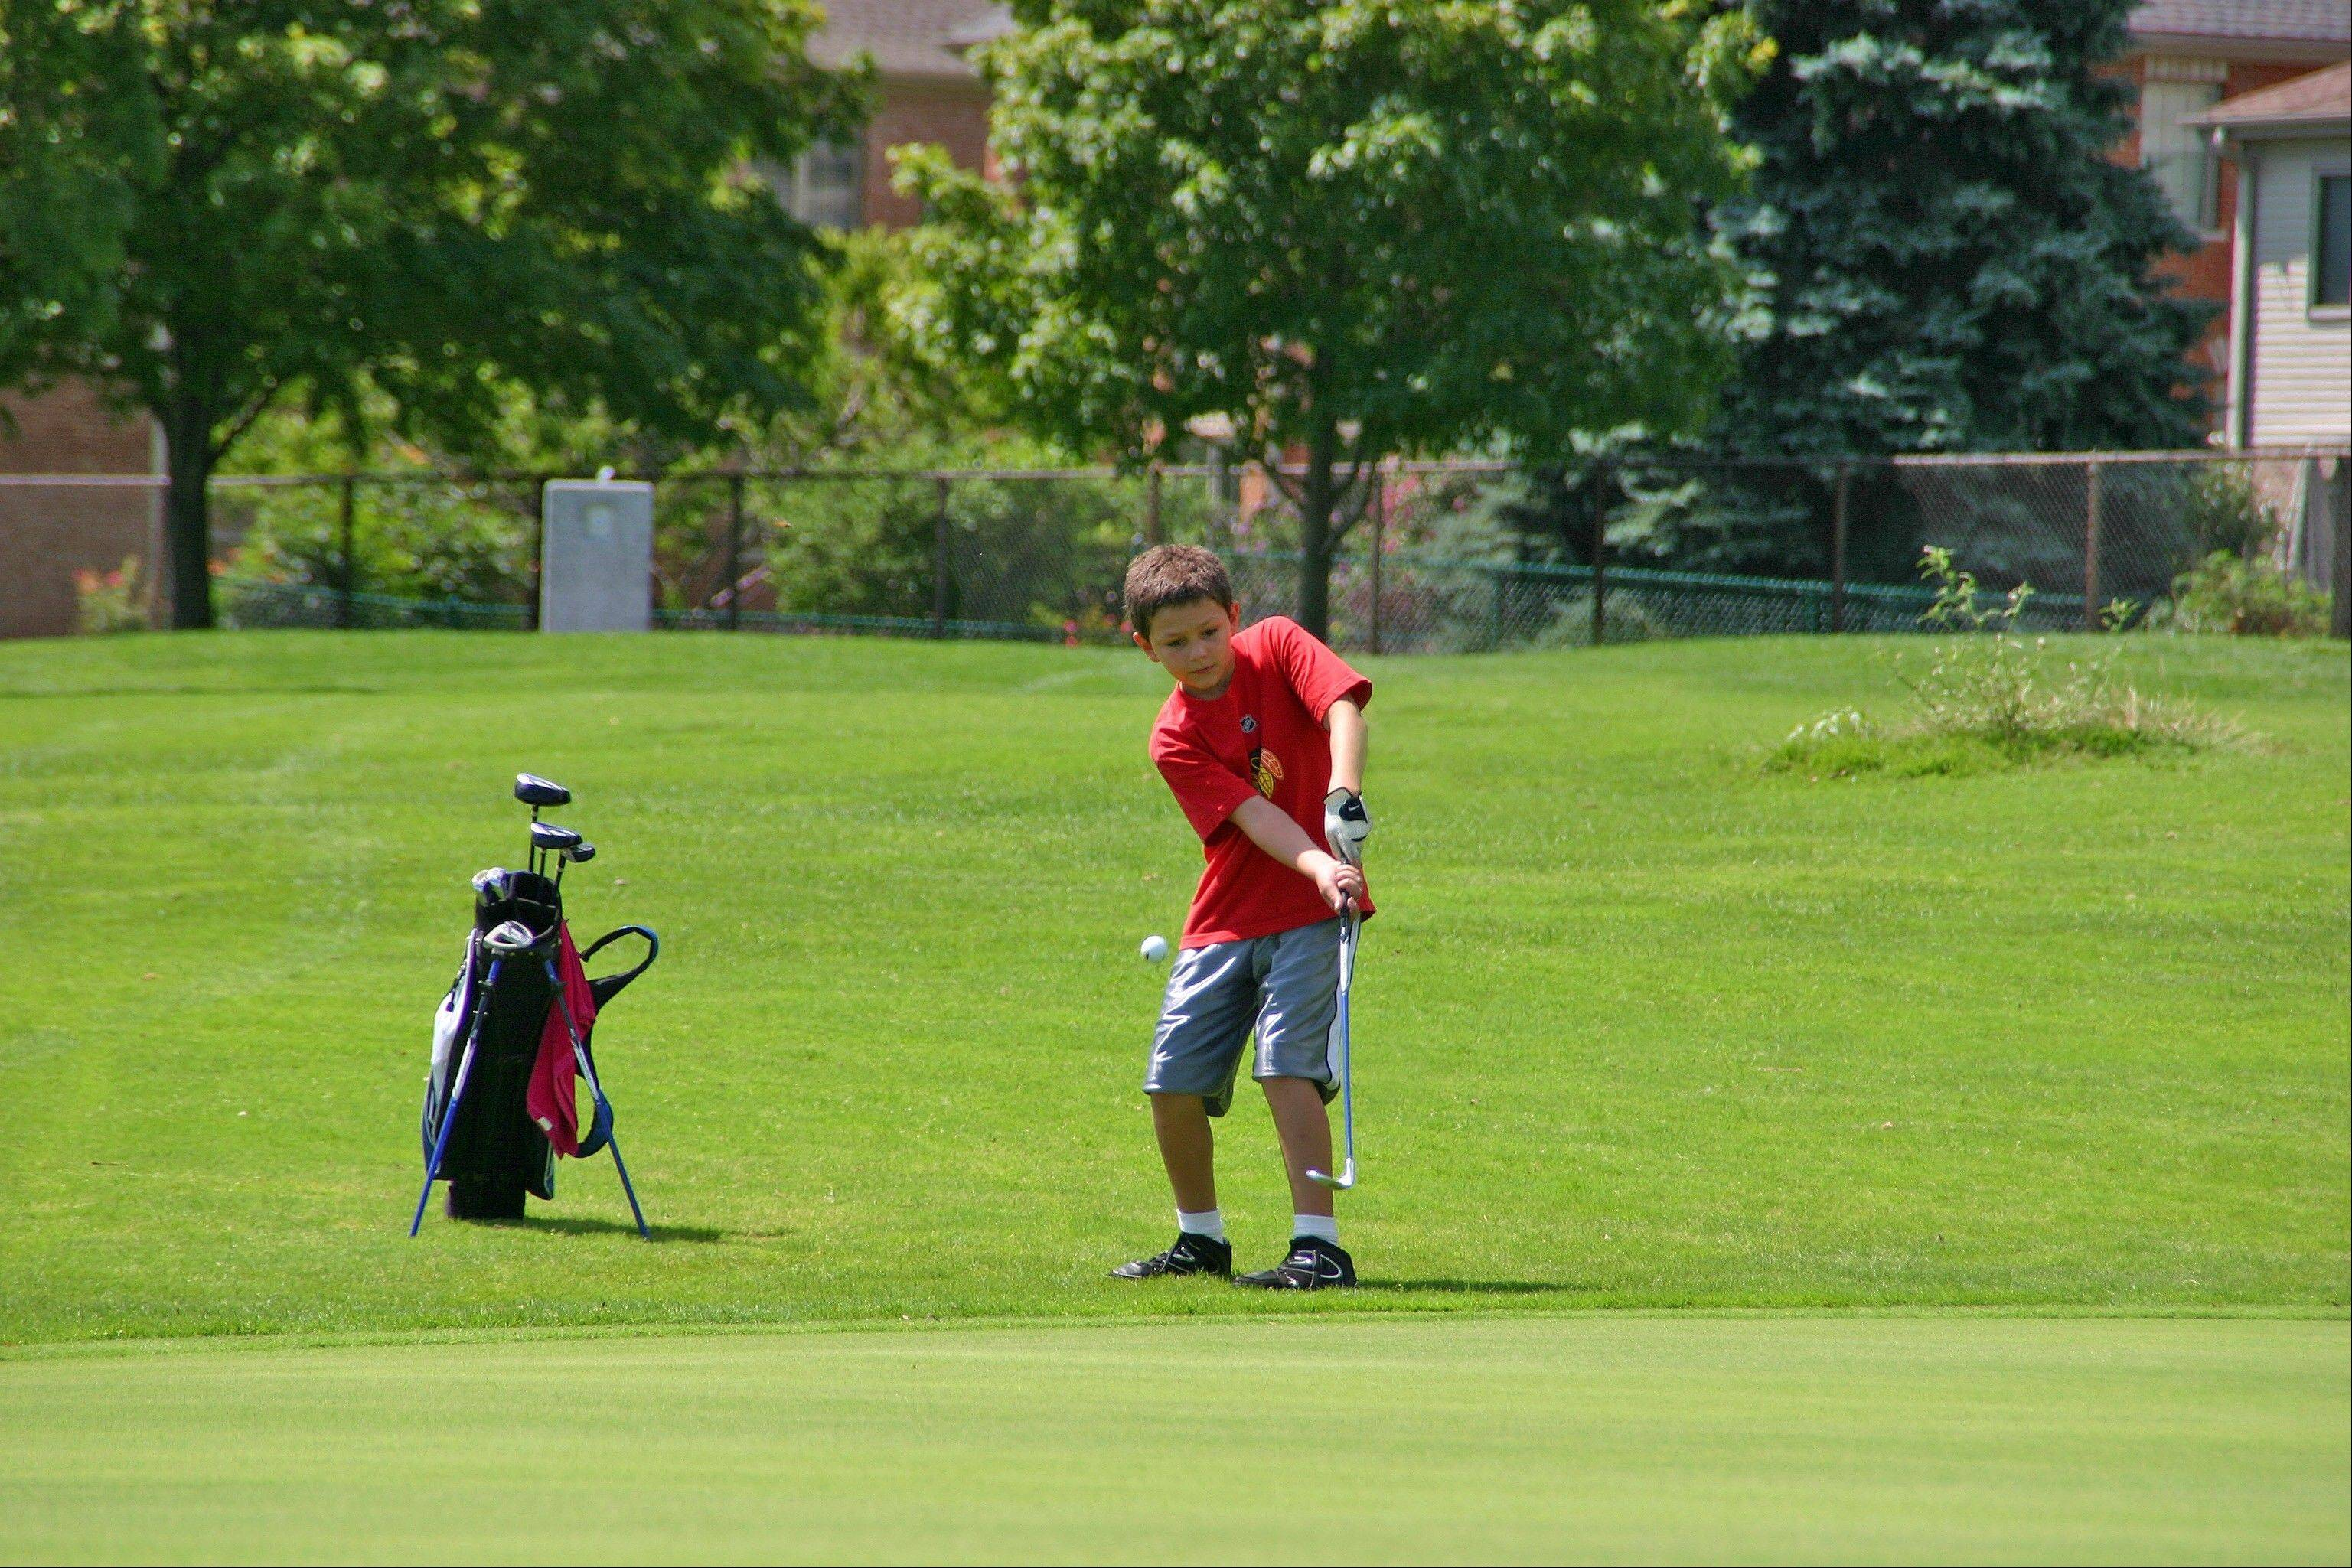 A young golfer chips onto the green at the eighth annual Optimist Club Youth Golf Outing at Lake Park.